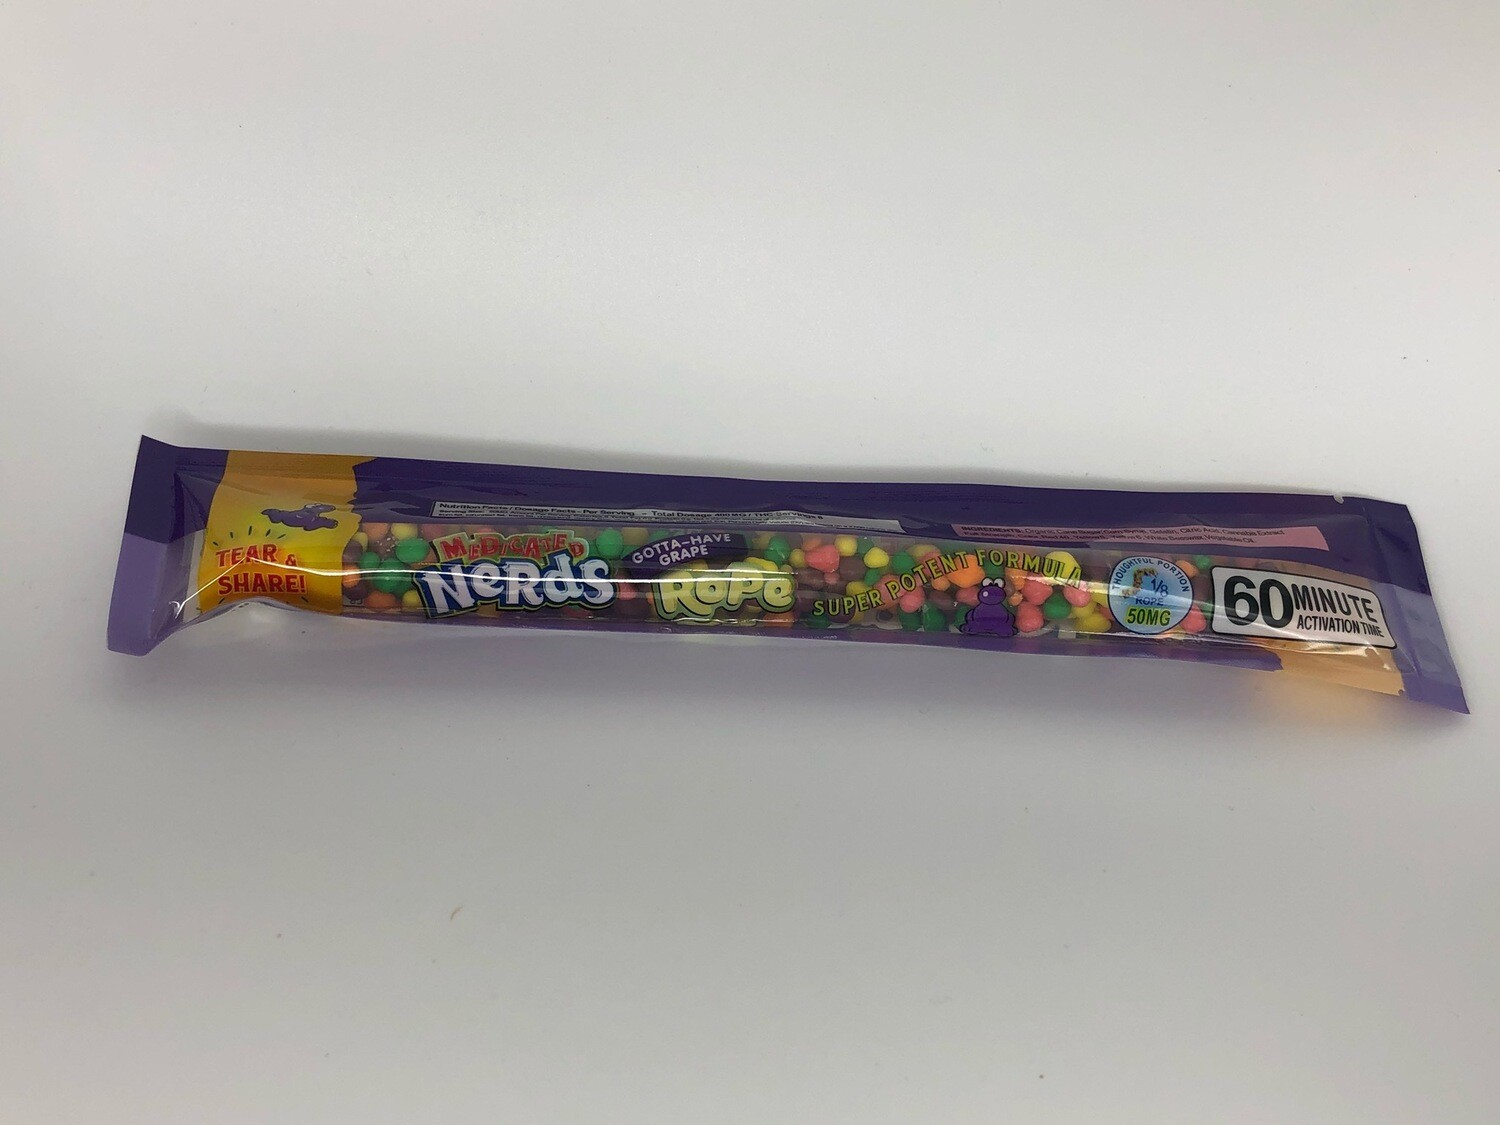 Nerds Rope - Gotta-Have Grape (400MG)